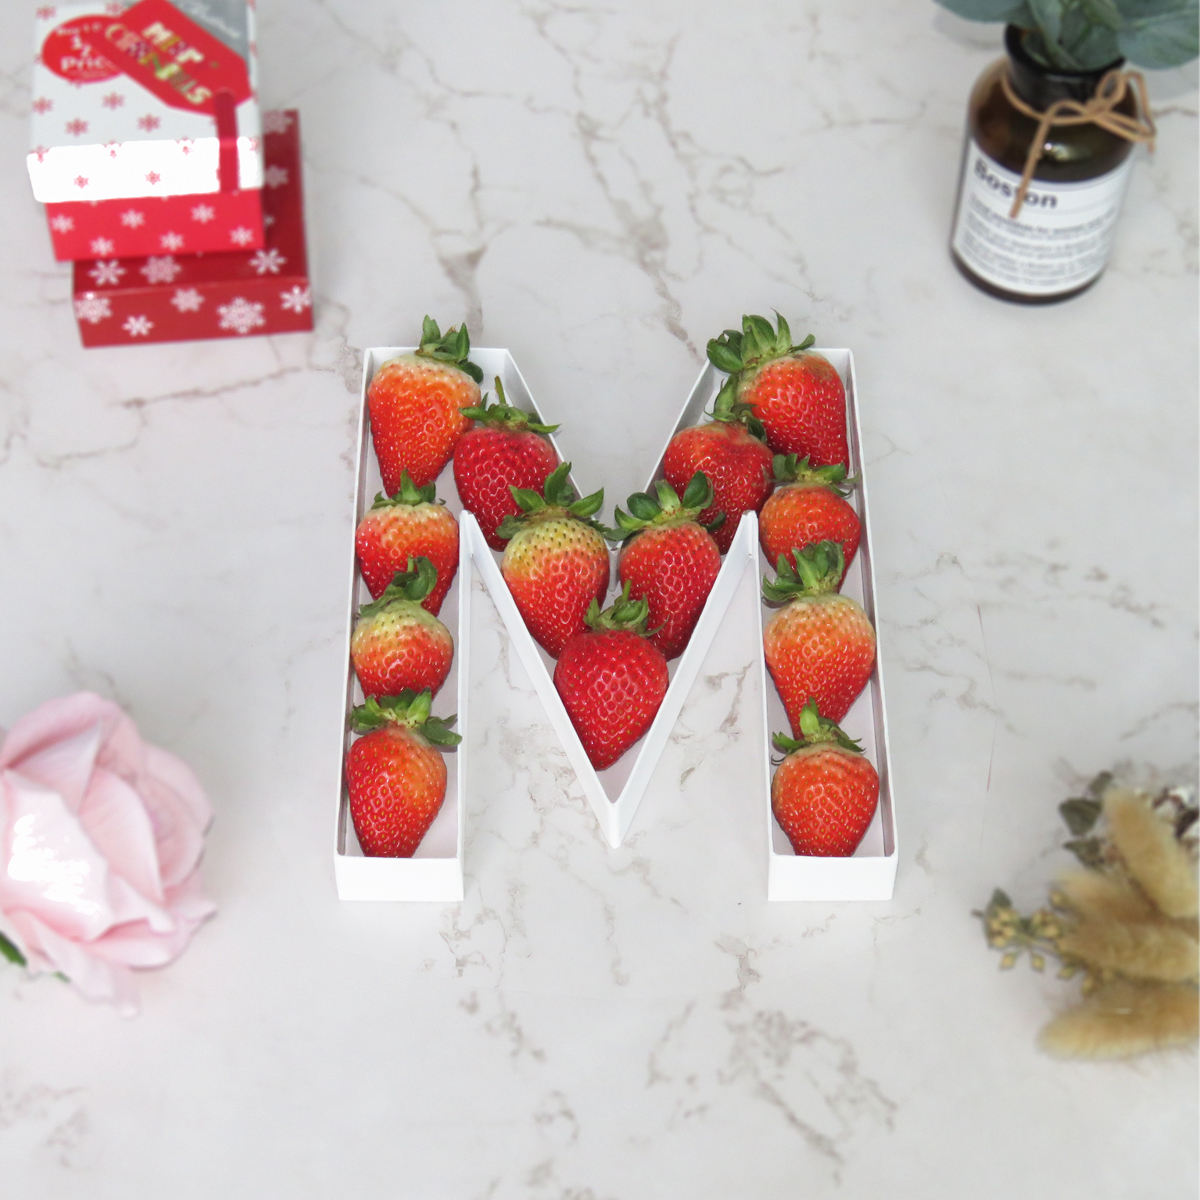 Decorative White Paper Alphabet Cardboard Boxes Mache Letter Shaped Gift box For Strawberry